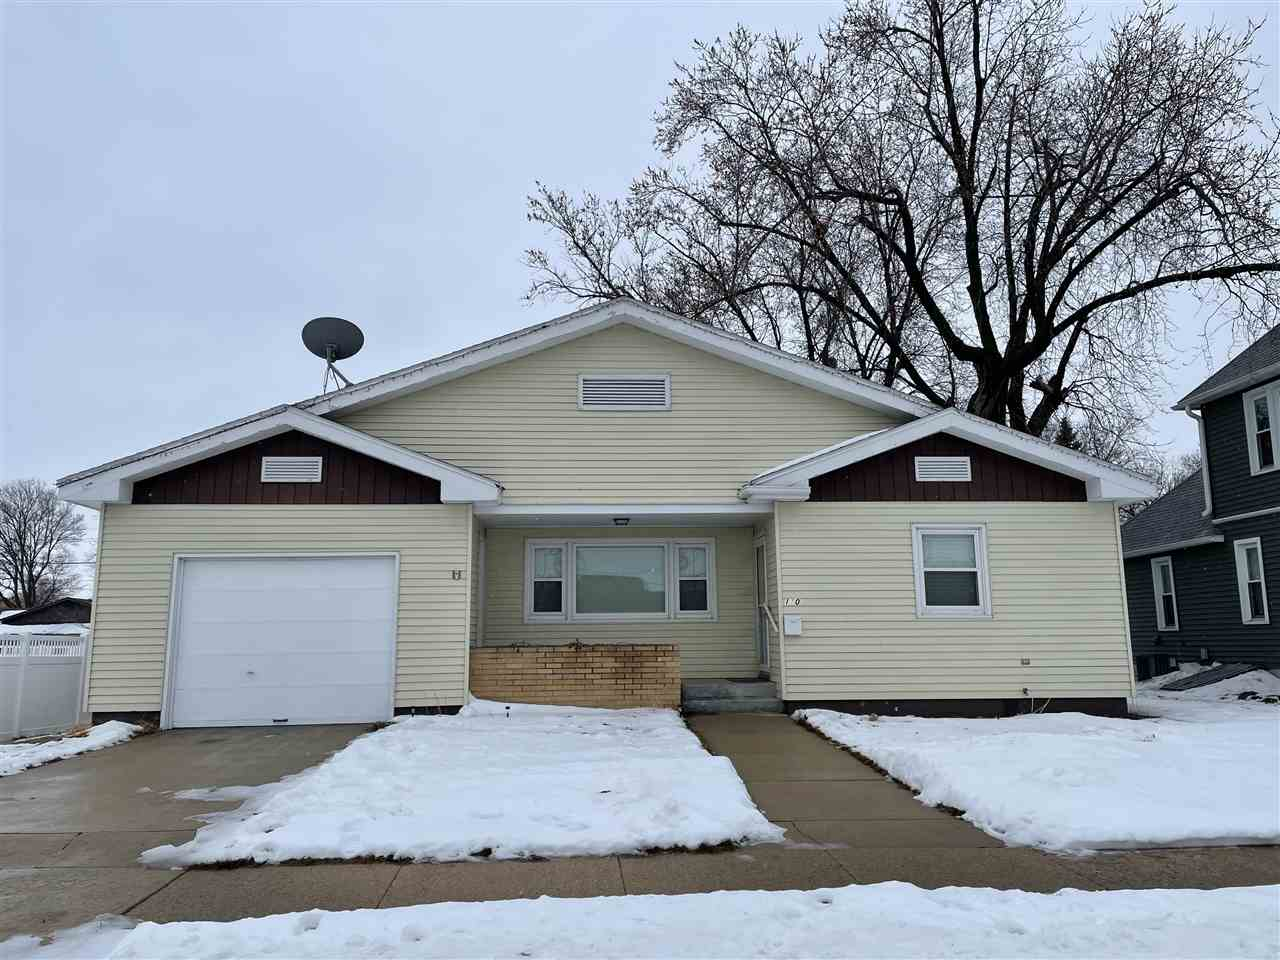 110 E Nebraska, Pierce, NE 68767